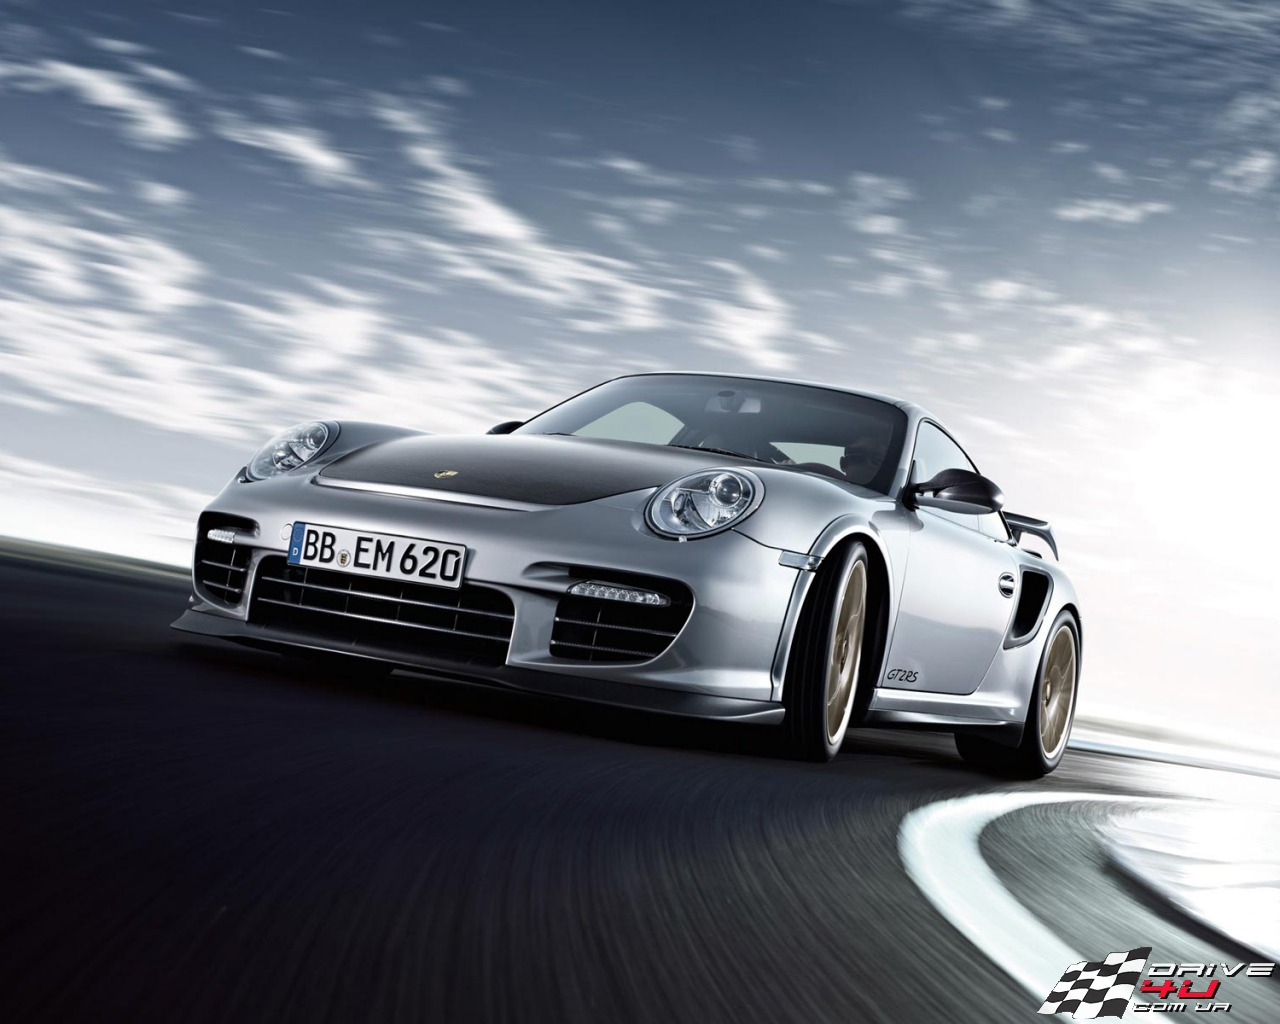 Porsche-911-GT2-RS-2011-wallpaper-8x1280